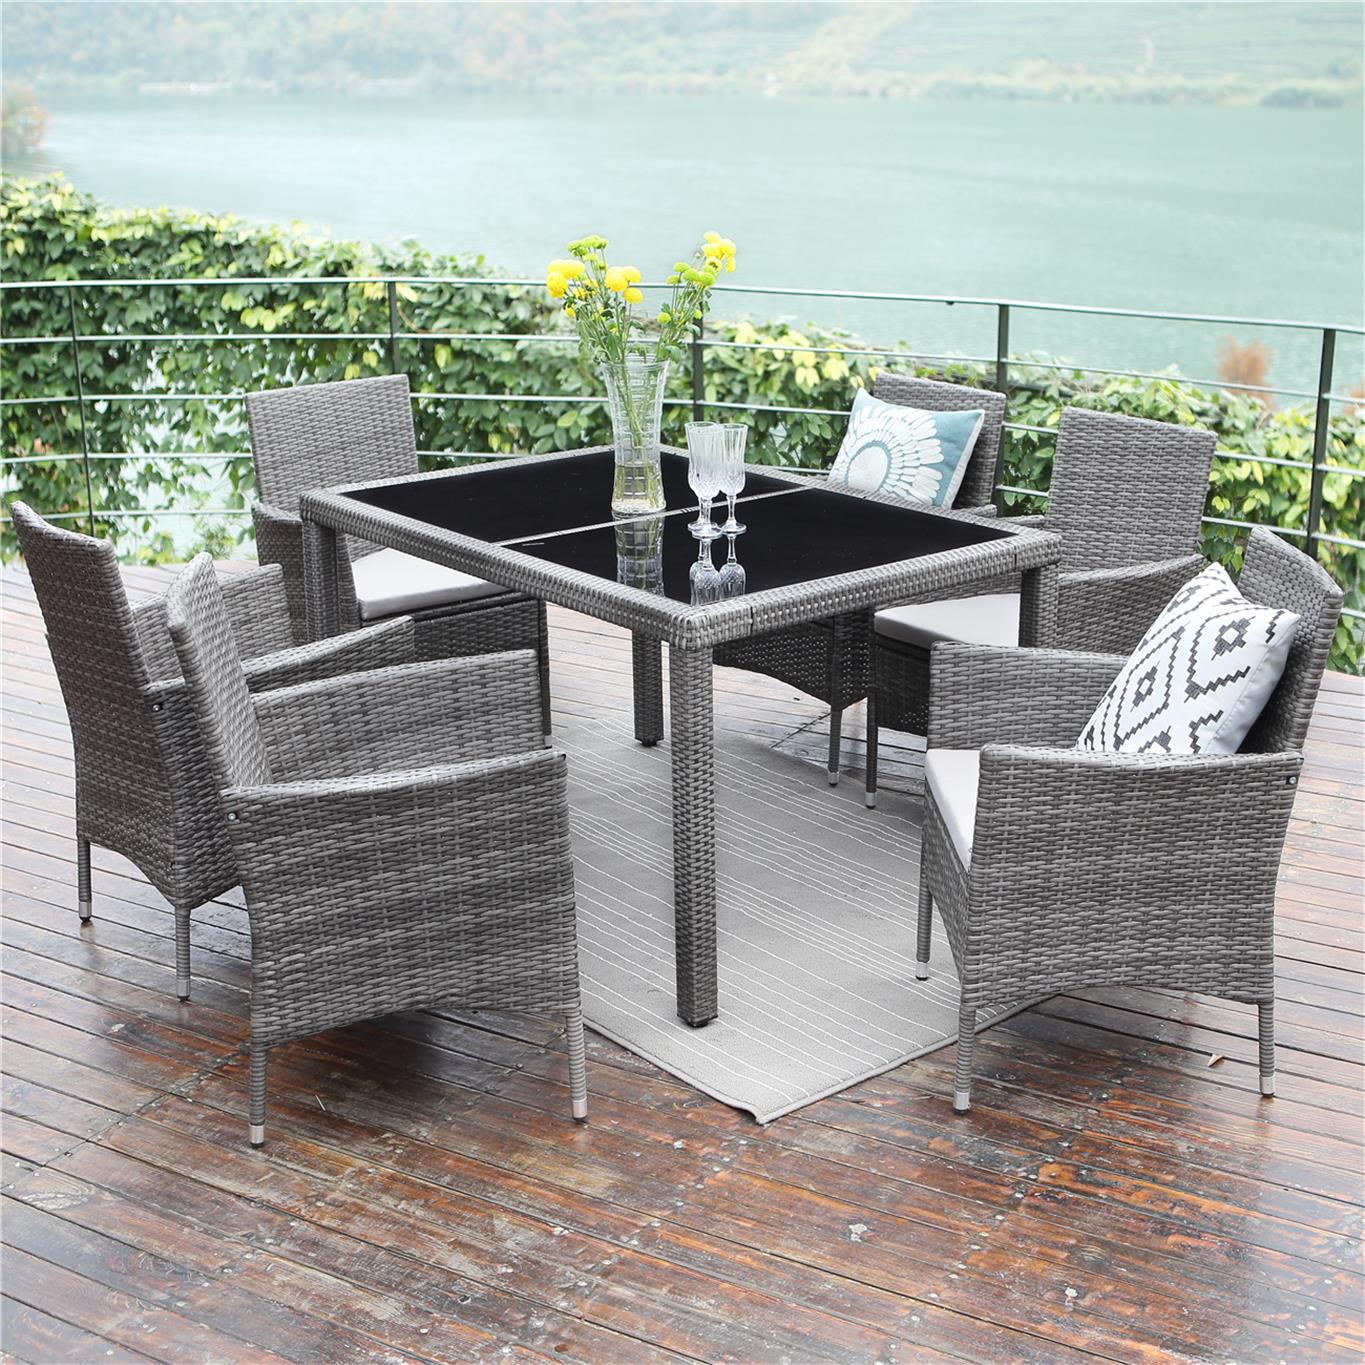 Outdoor Wicker Dining Chairs 7 Piece Patio Wicker Dining Set Wisteria Lane Outdoor Rattan Dining Furniture Glass Table Cushioned Chair Grey